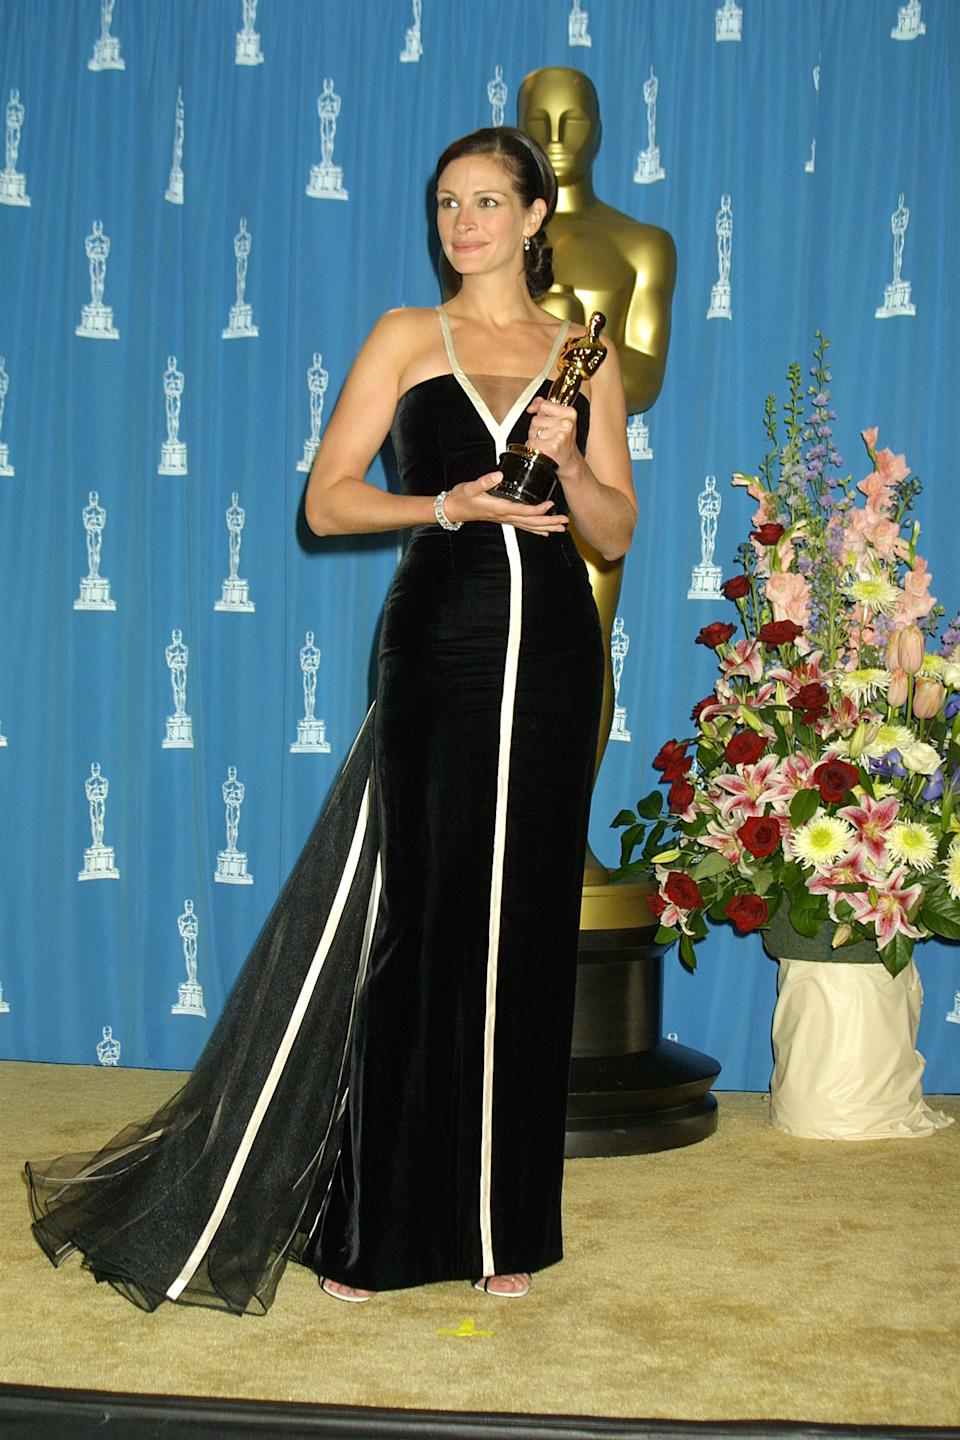 "<p>Roberts's acceptance speech after winning the Oscar for Best Actress for her role in ""Erin Brockovich"" is almost as memorable as her black and white vintage Valentino gown. The look was an instant red carpet favourite that was pulled for the star from the designer's archives from 1992.</p>"